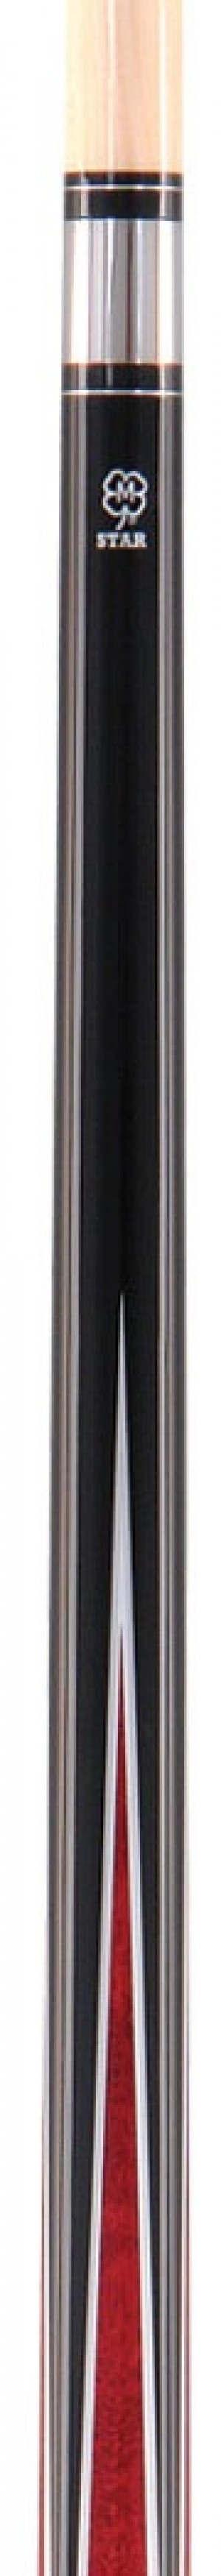 McDermott Star Cue S3